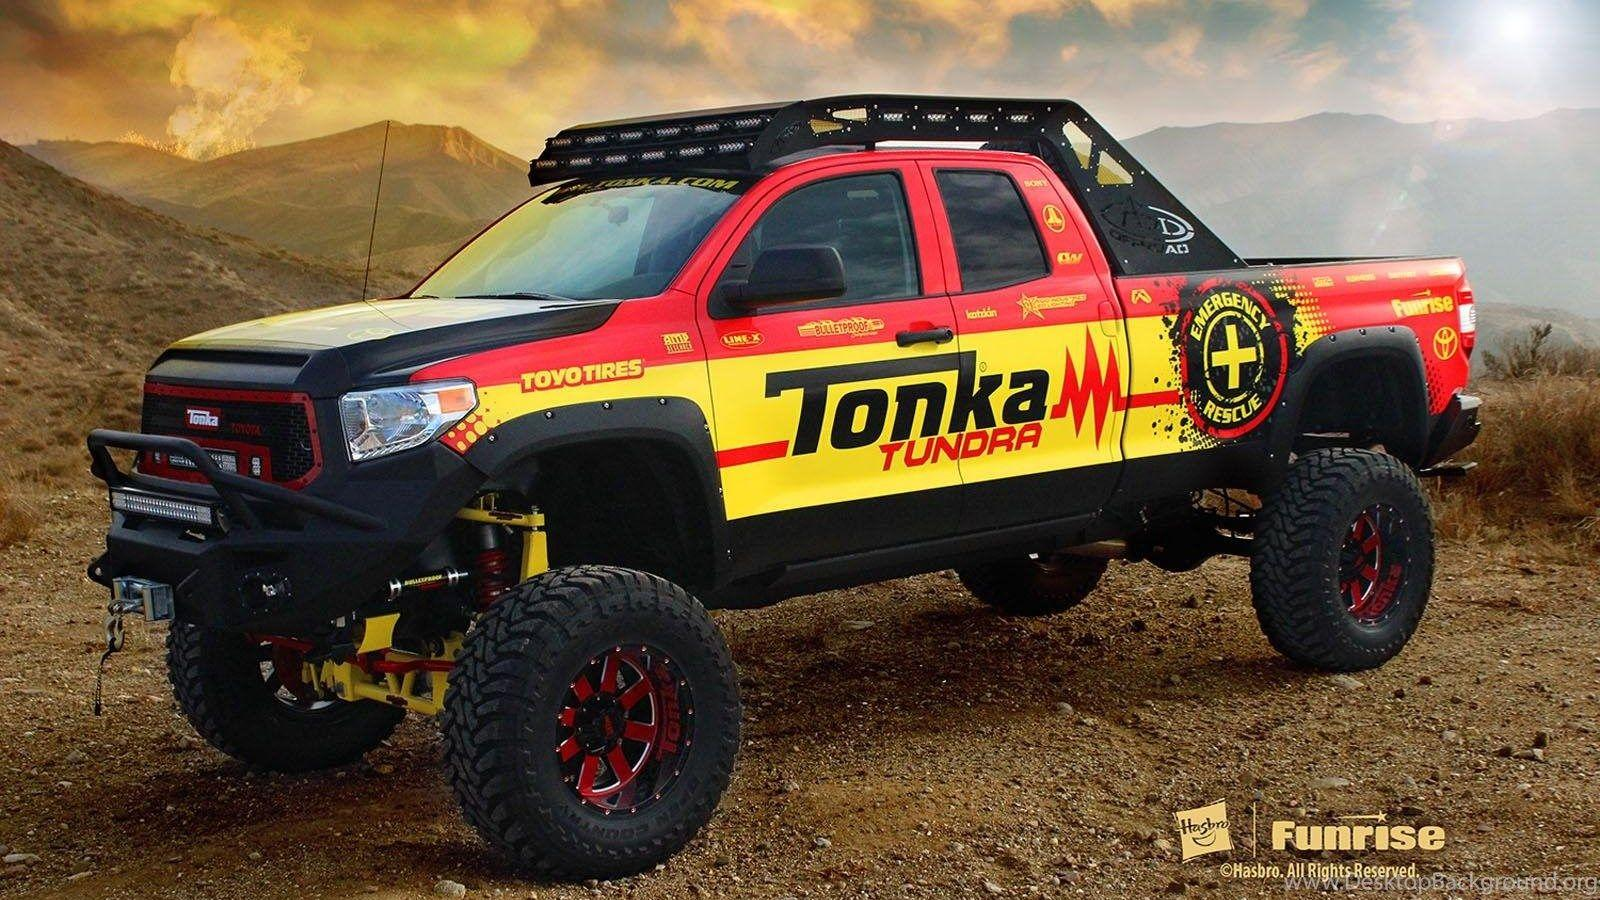 2014 Toyota Tundra Monster Trucks Desktop Wallpapers Desktop Backgrounds